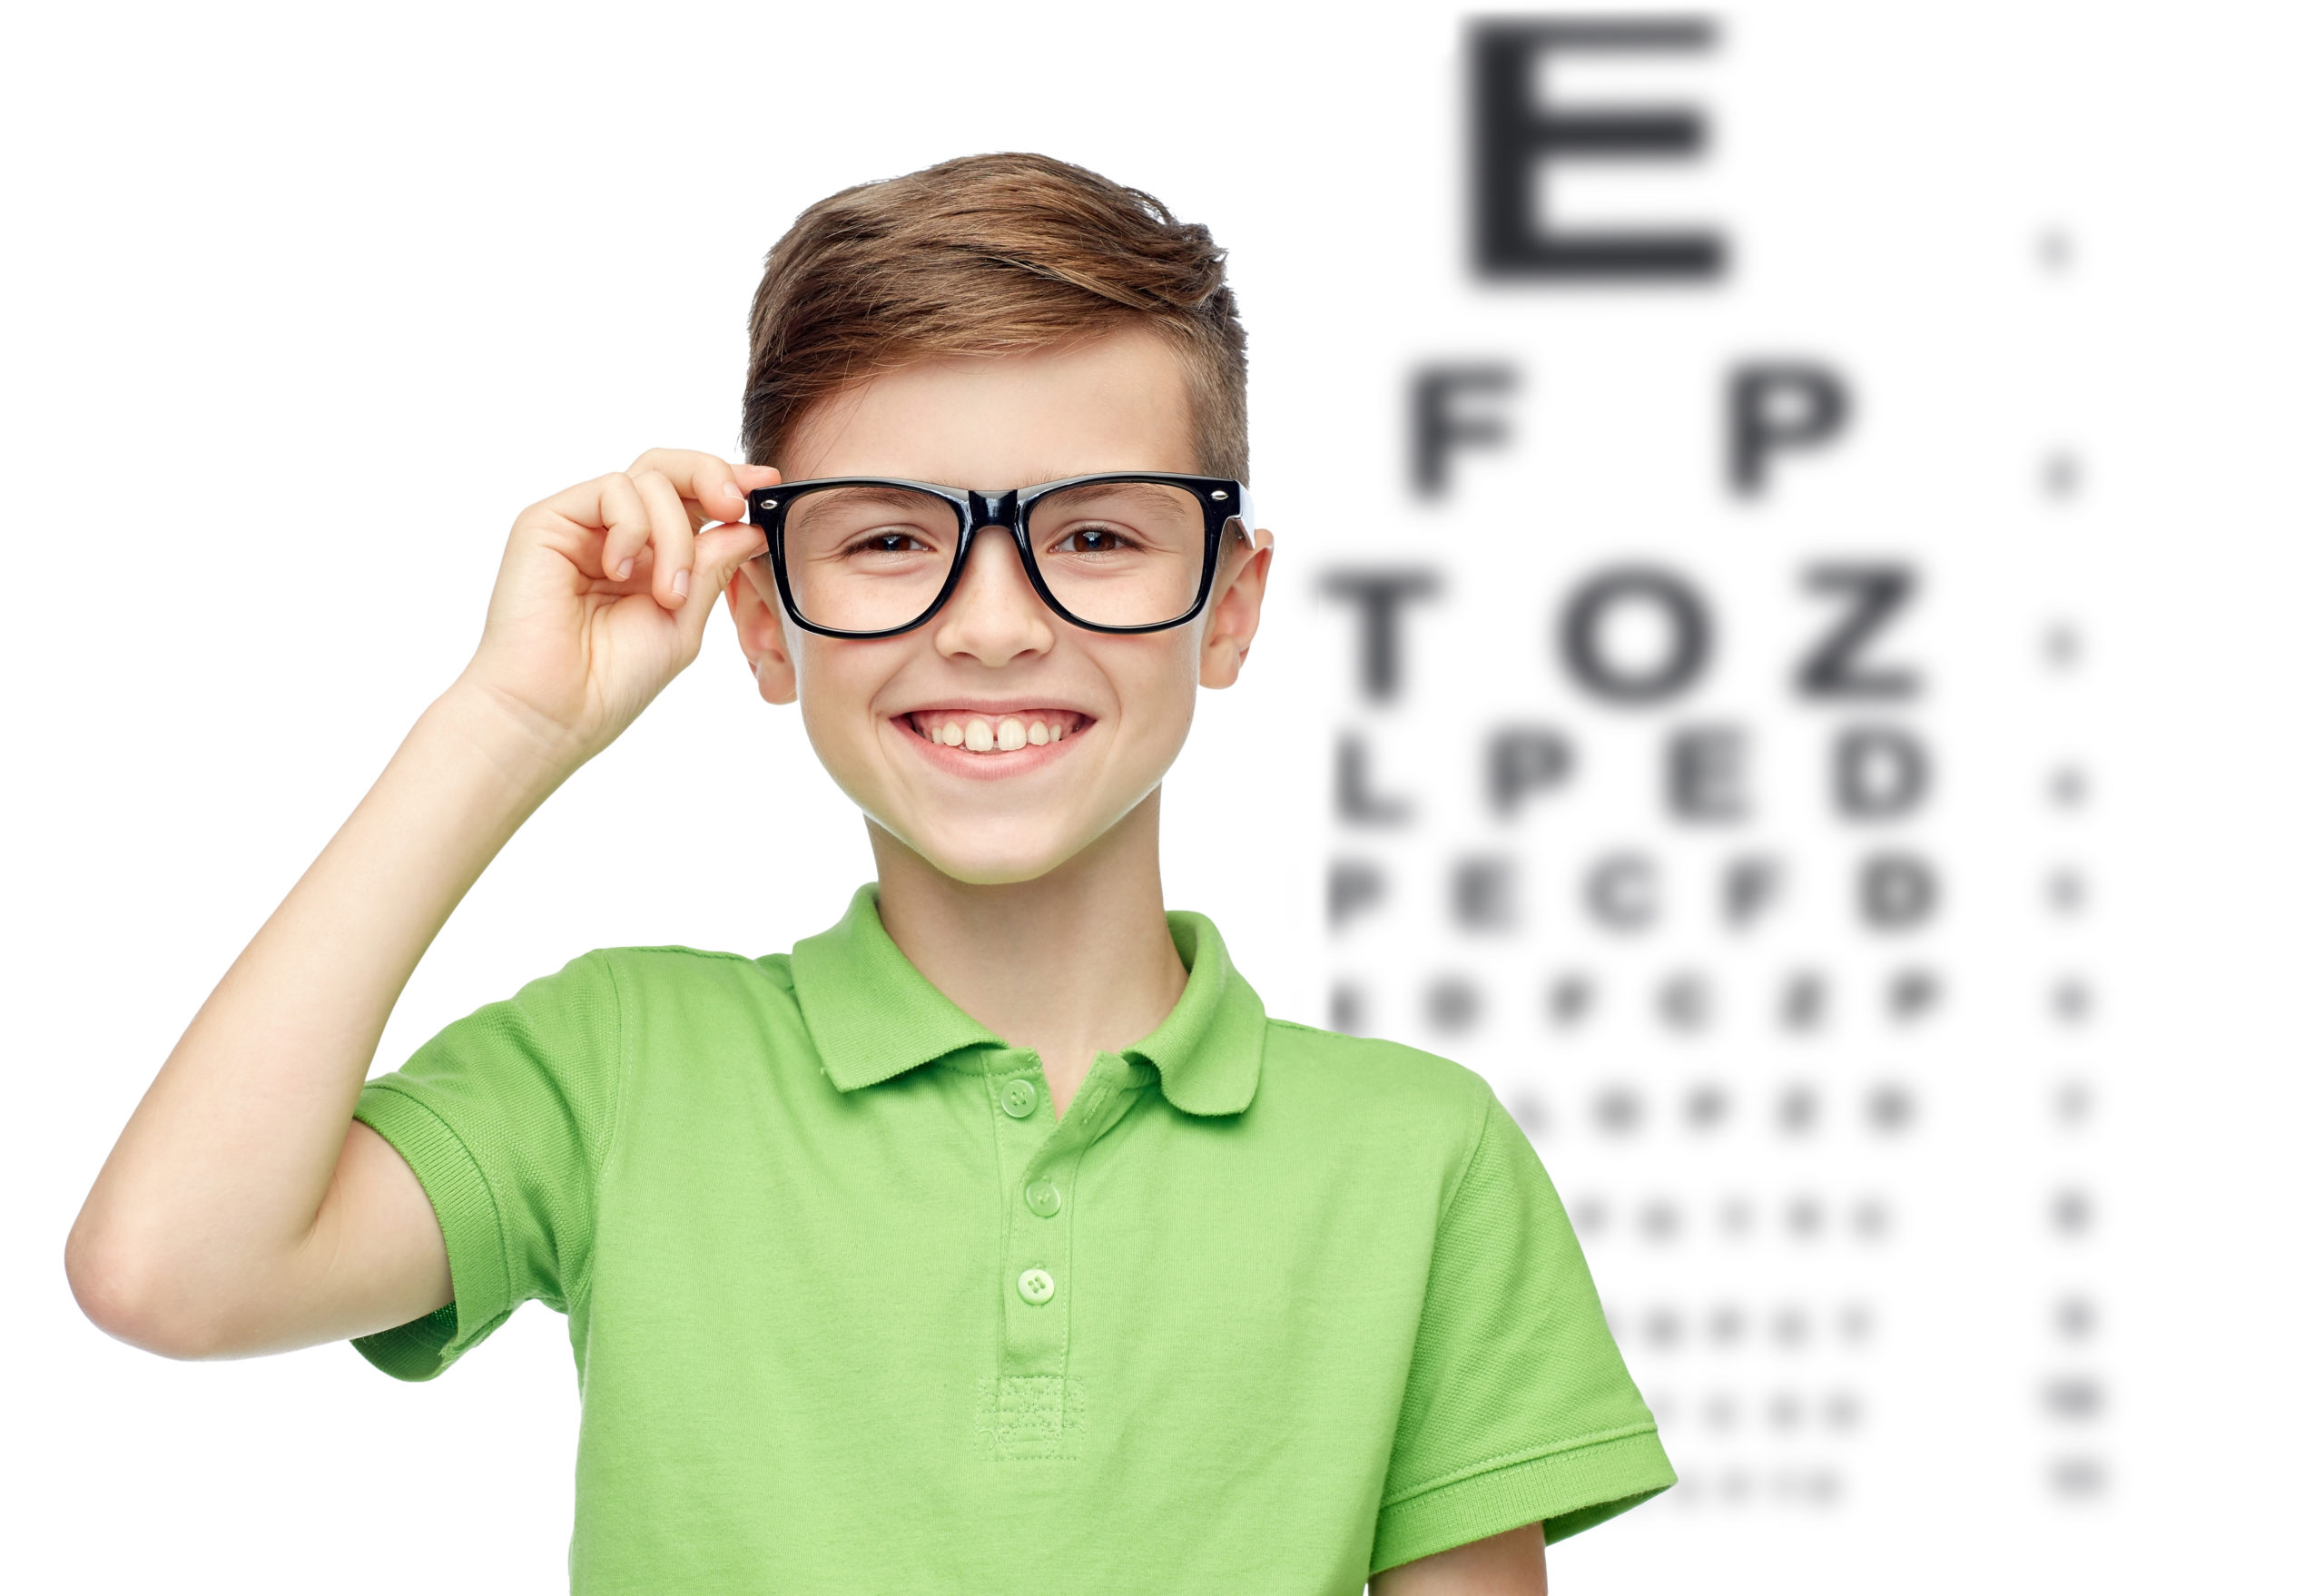 August is National Eye Exam Month